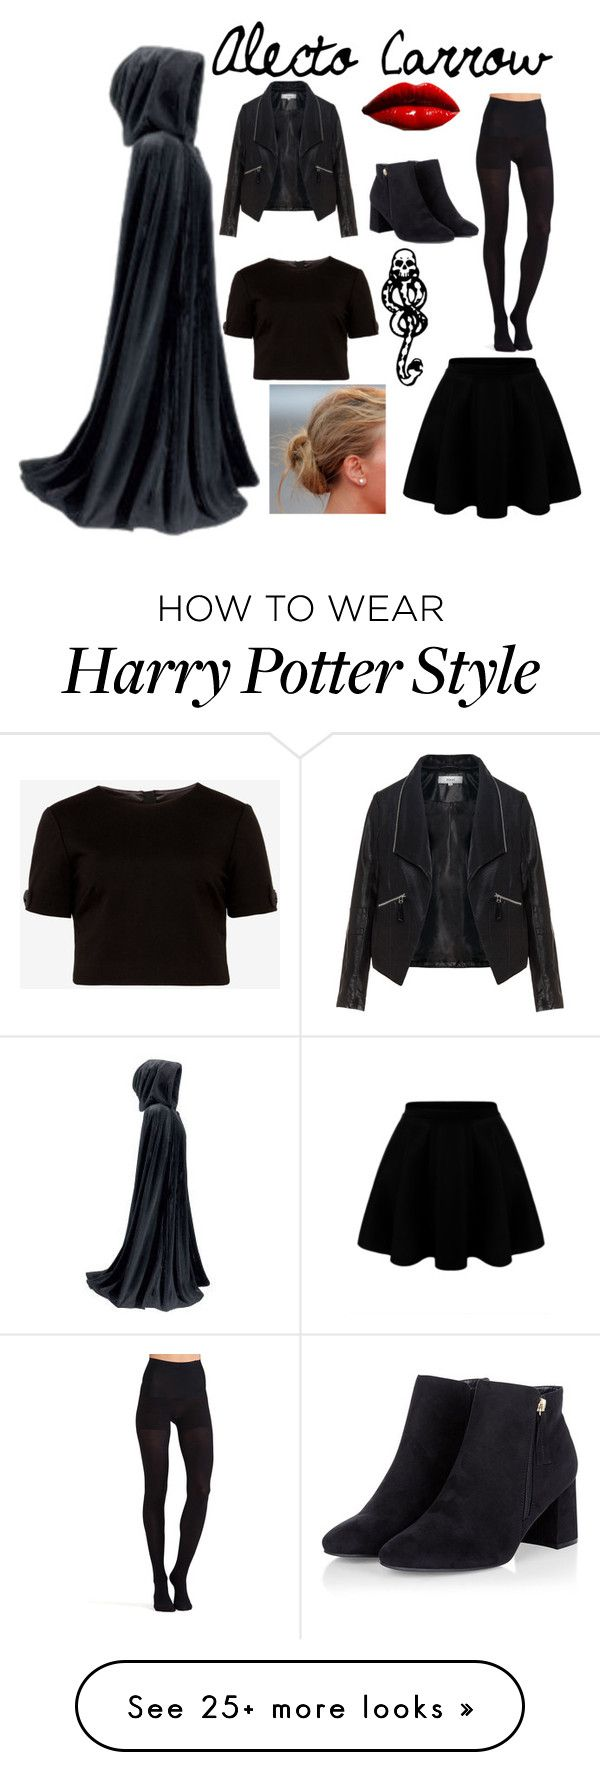 """Alecto Carrow - Deatheater"" by autybeddoe on Polyvore featuring Zizzi, Ted Baker, Commando and mark."